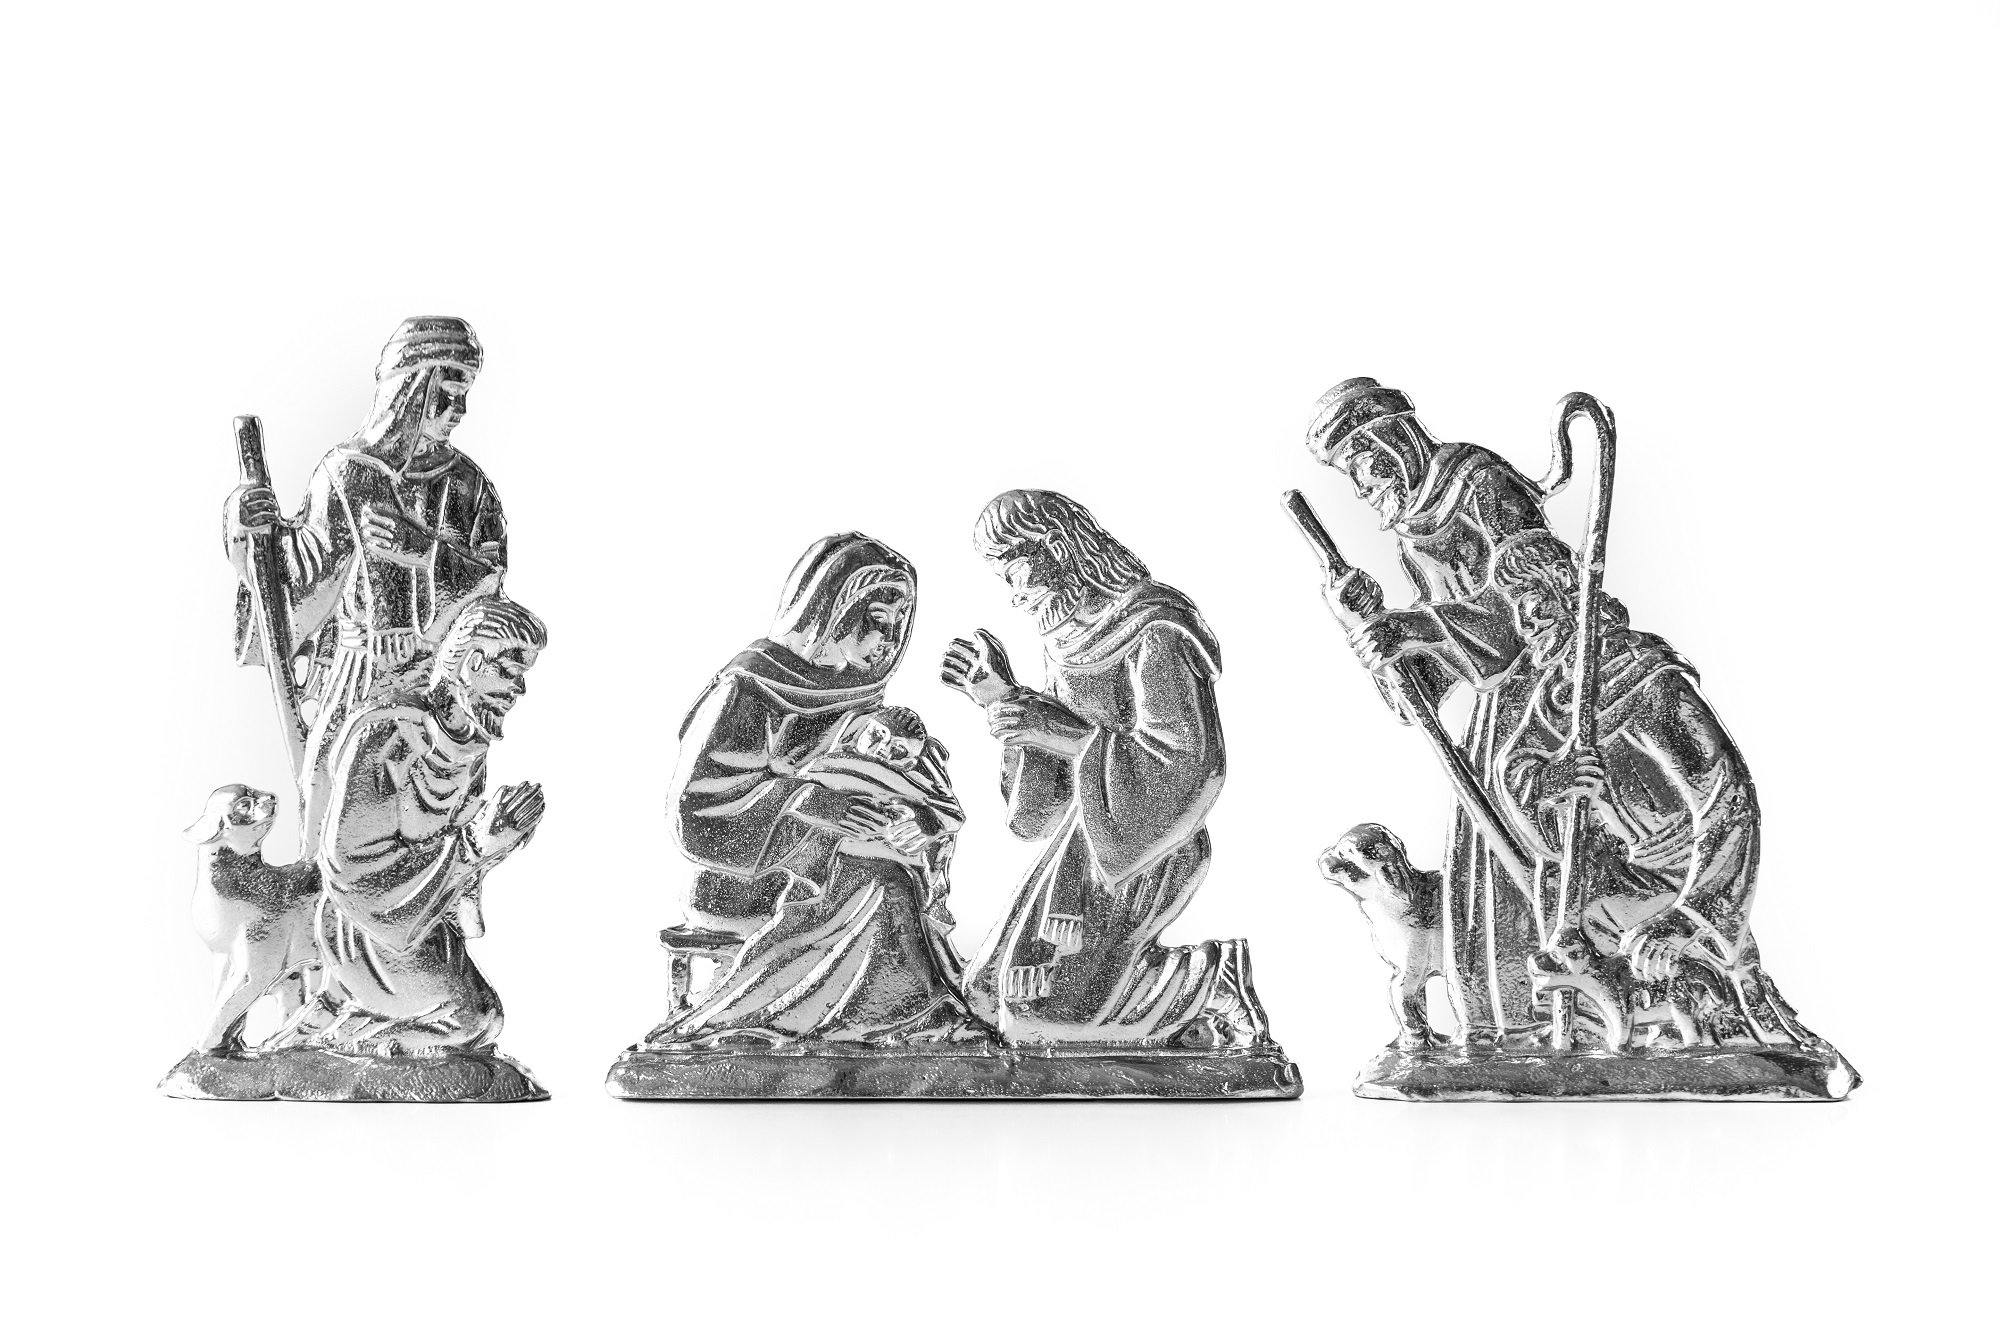 Handmade nativity holiday figurine set